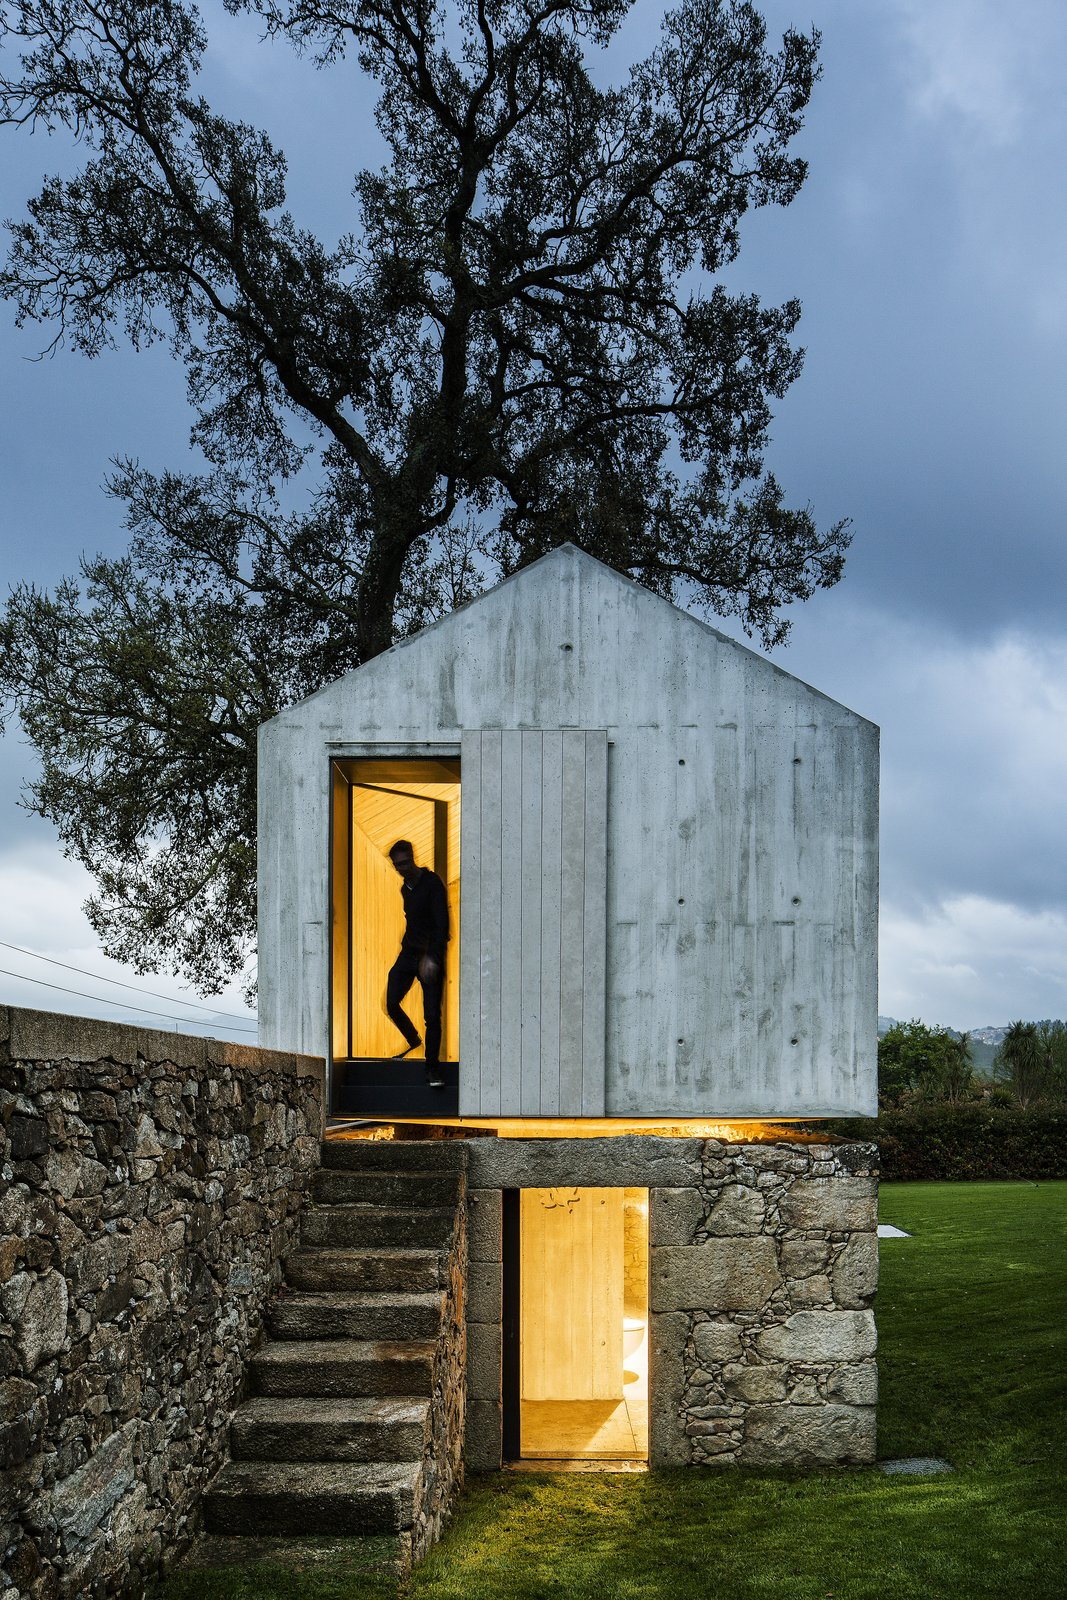 AZO Sequeira Arquitectos Associados transformed this derelict stone and wood backyard dovecoat located in Soutelo, Portugal, into a magical and minimalist concrete children's playhouse complete with a separate level for showers to compliment their client's backyard swimming pool.  Photo 6 of 17 in A New Book Examines the Art of Breathing Life Into Forgotten Architecture